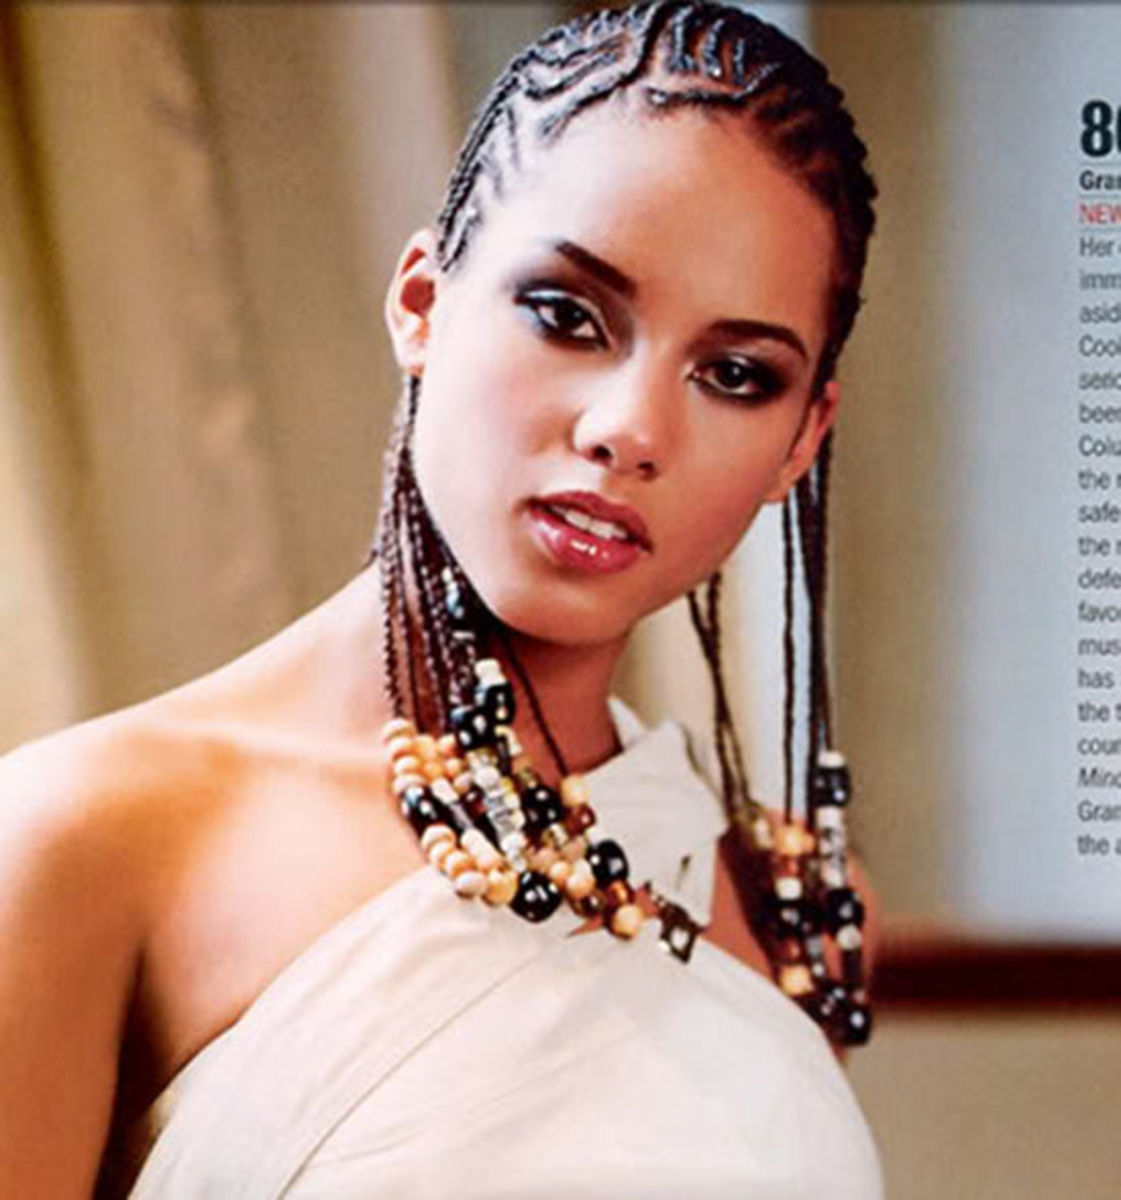 Alicia Keys cornrows hairstyle.